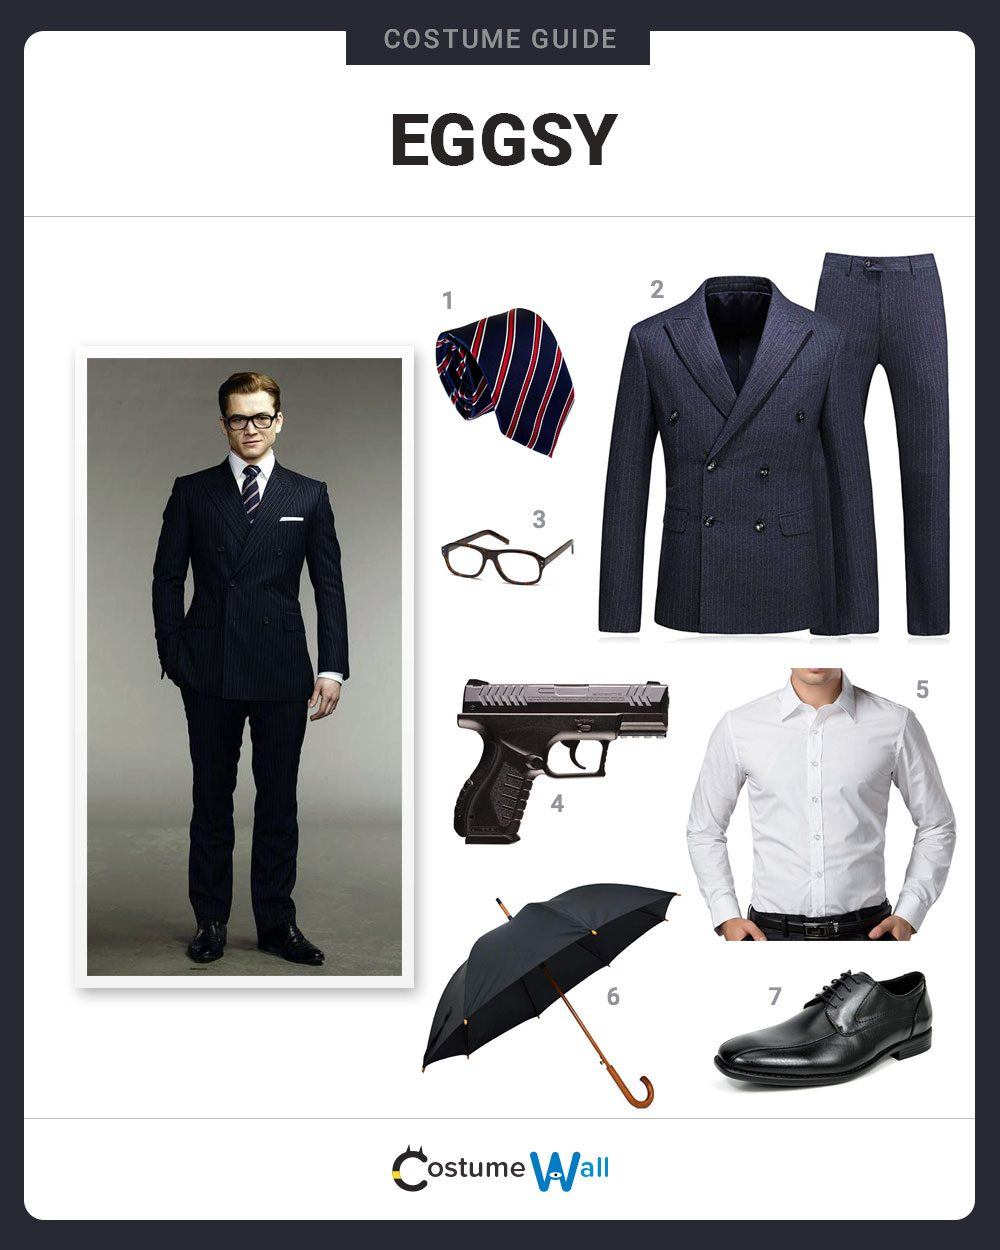 Eggsy Costume Guide